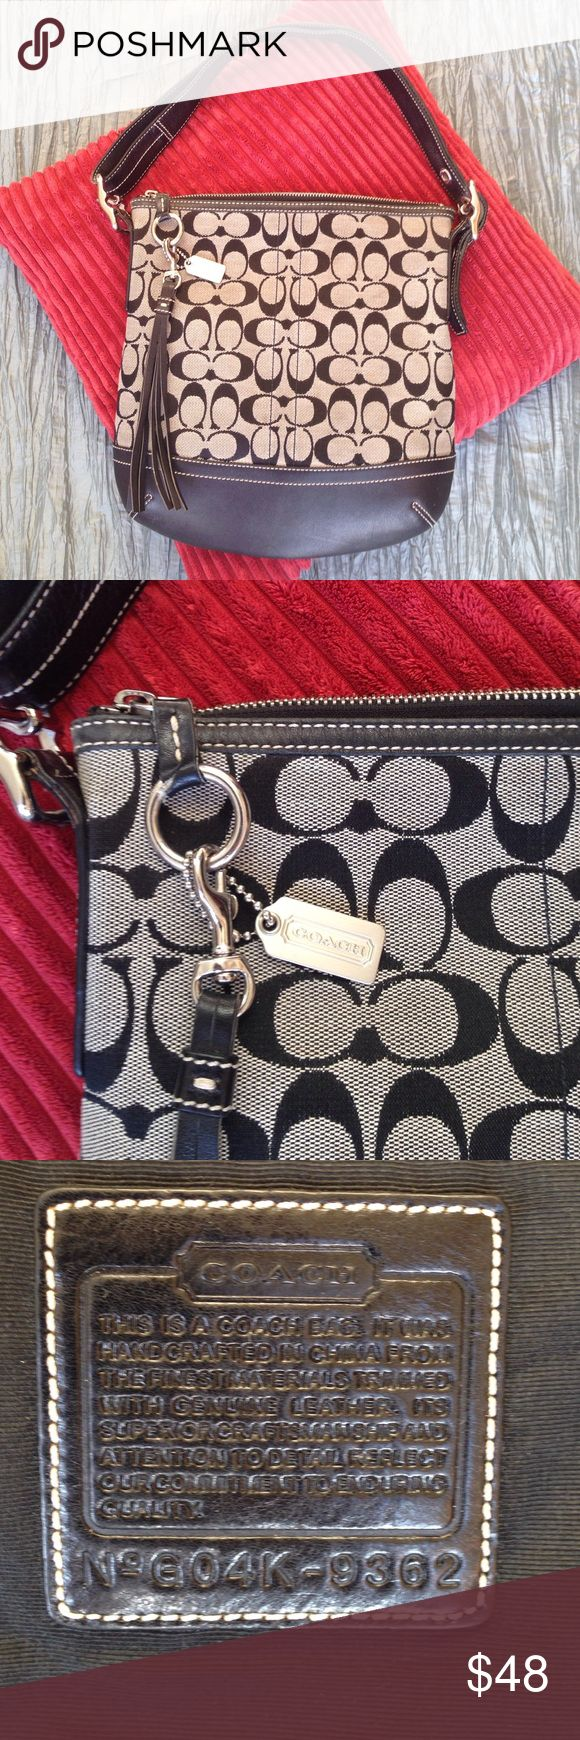 Coach purse Super clean. Very slight signs of wear and could use a light cleaning. Coach Bags Shoulder Bags